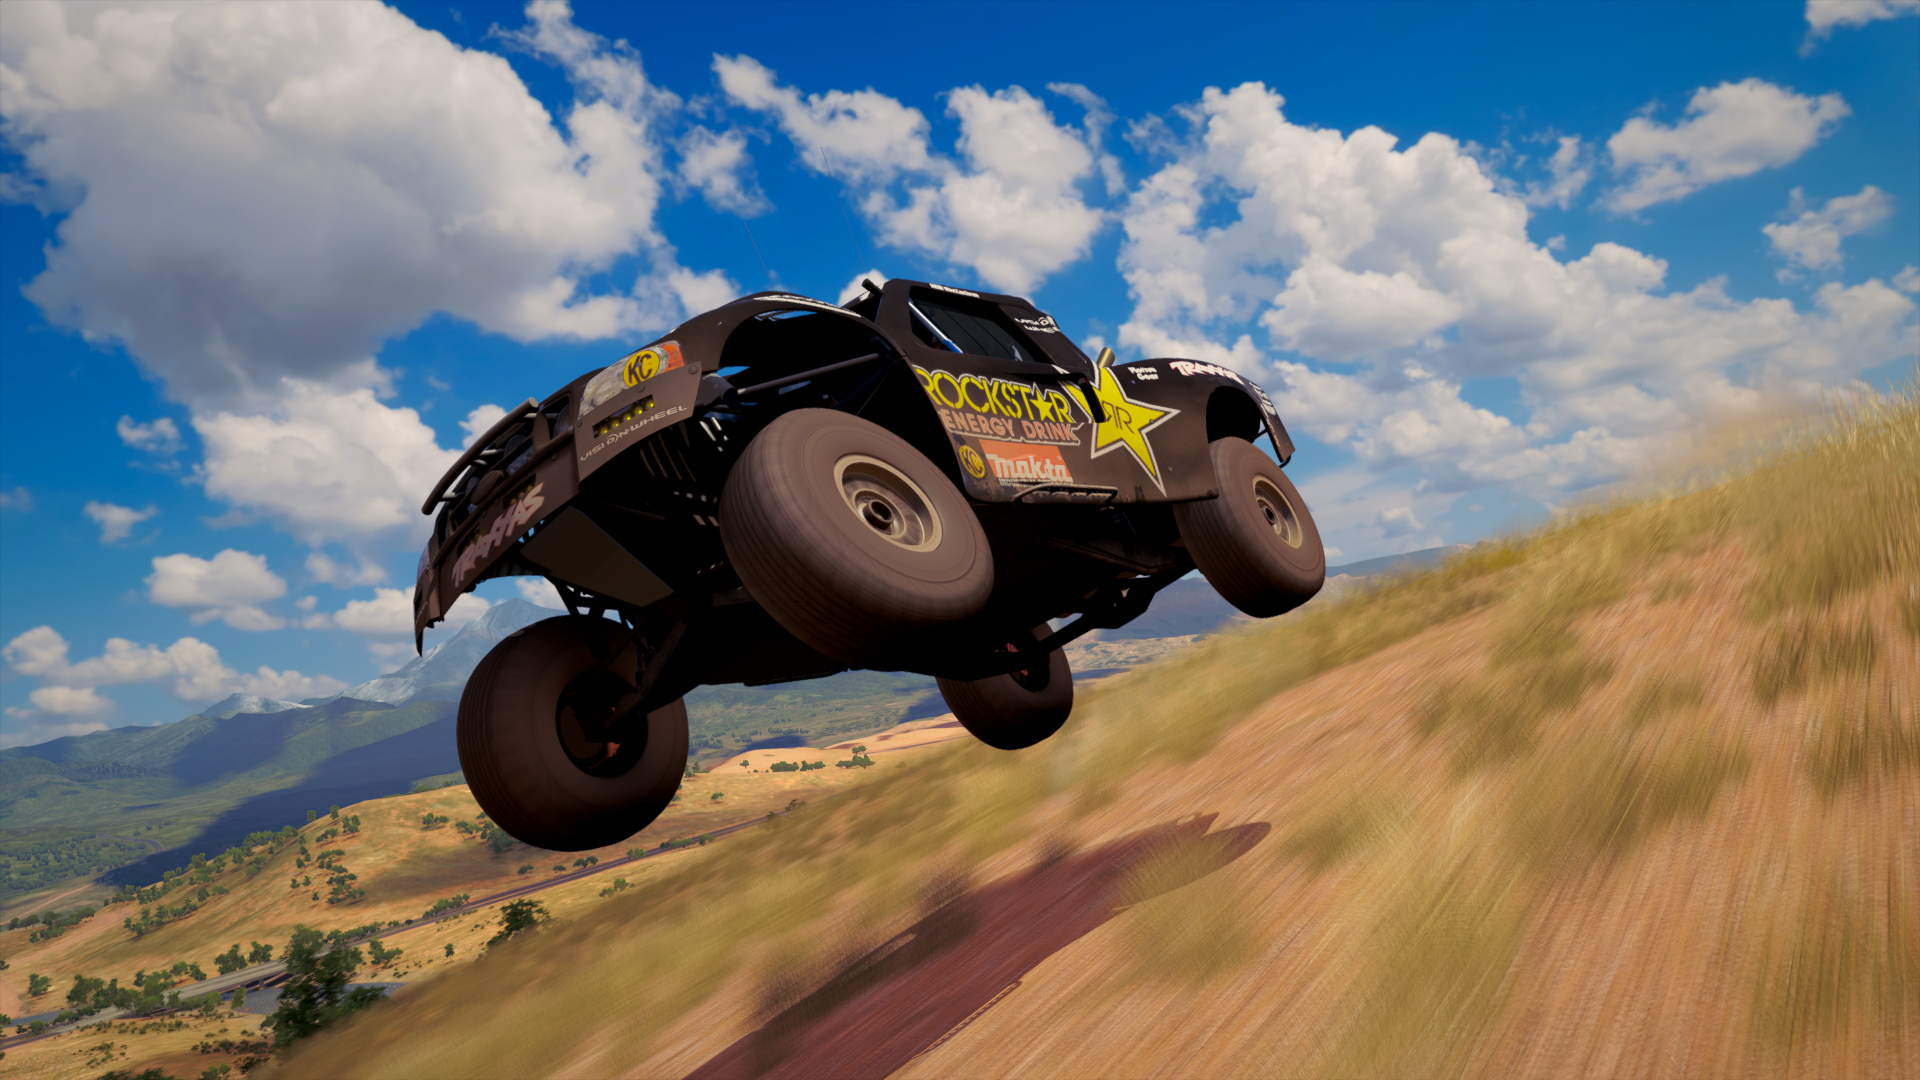 Trophy Truck On Rampage Hd Wallpaper Background Image 1920x1080 Id 916179 Wallpaper Abyss